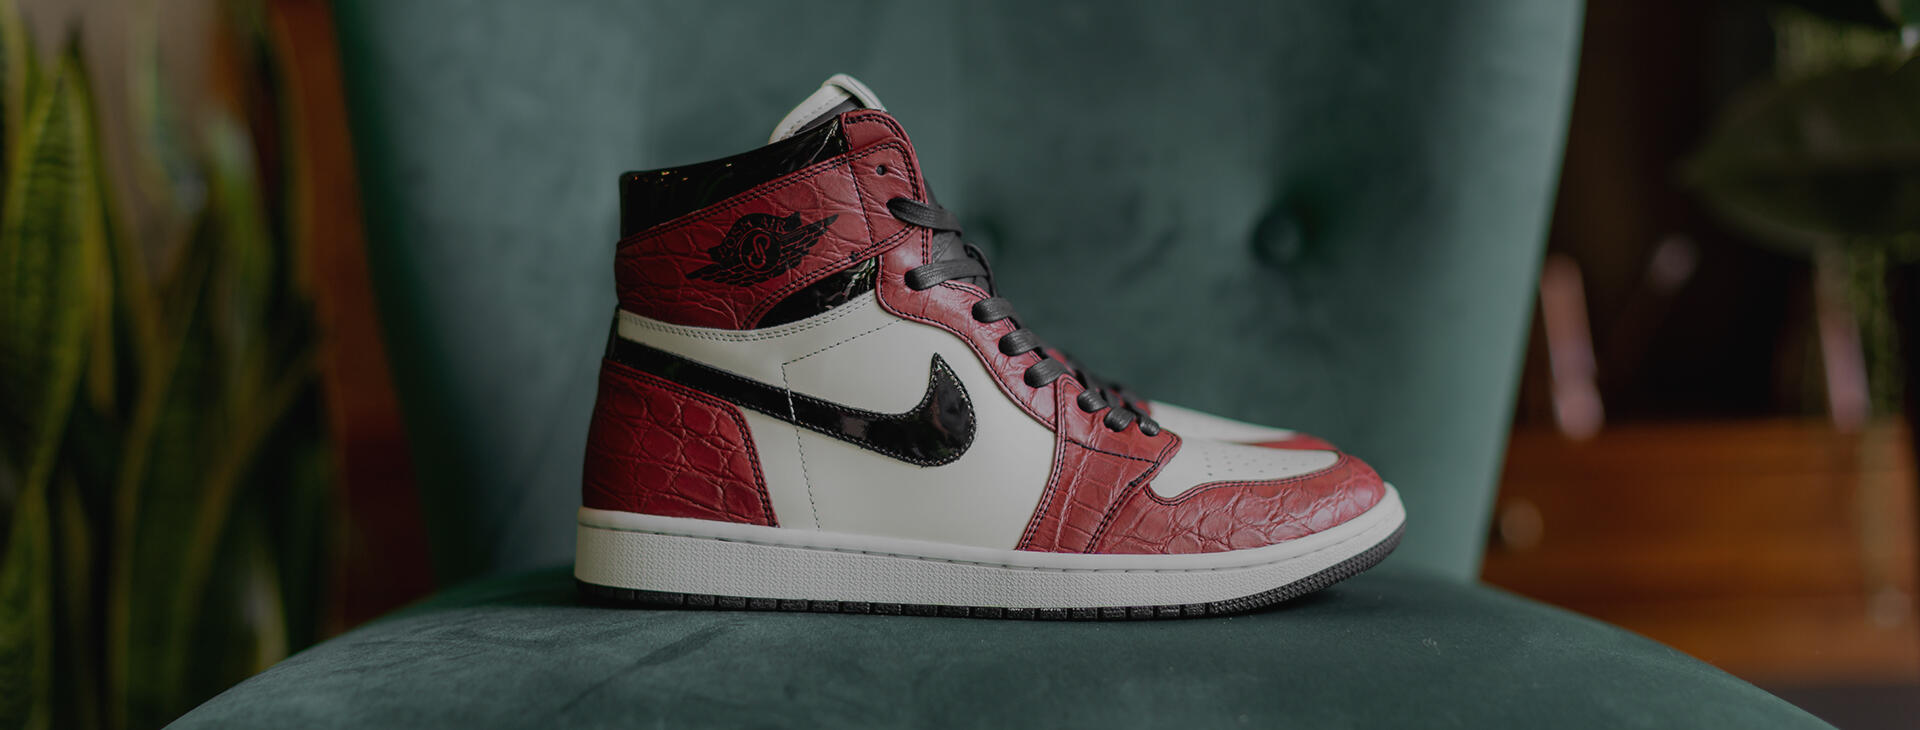 The brands teamed up to create a custom AJ and a handbag in red Nappa leather to raffle for the Fashion Scholarship Fund.